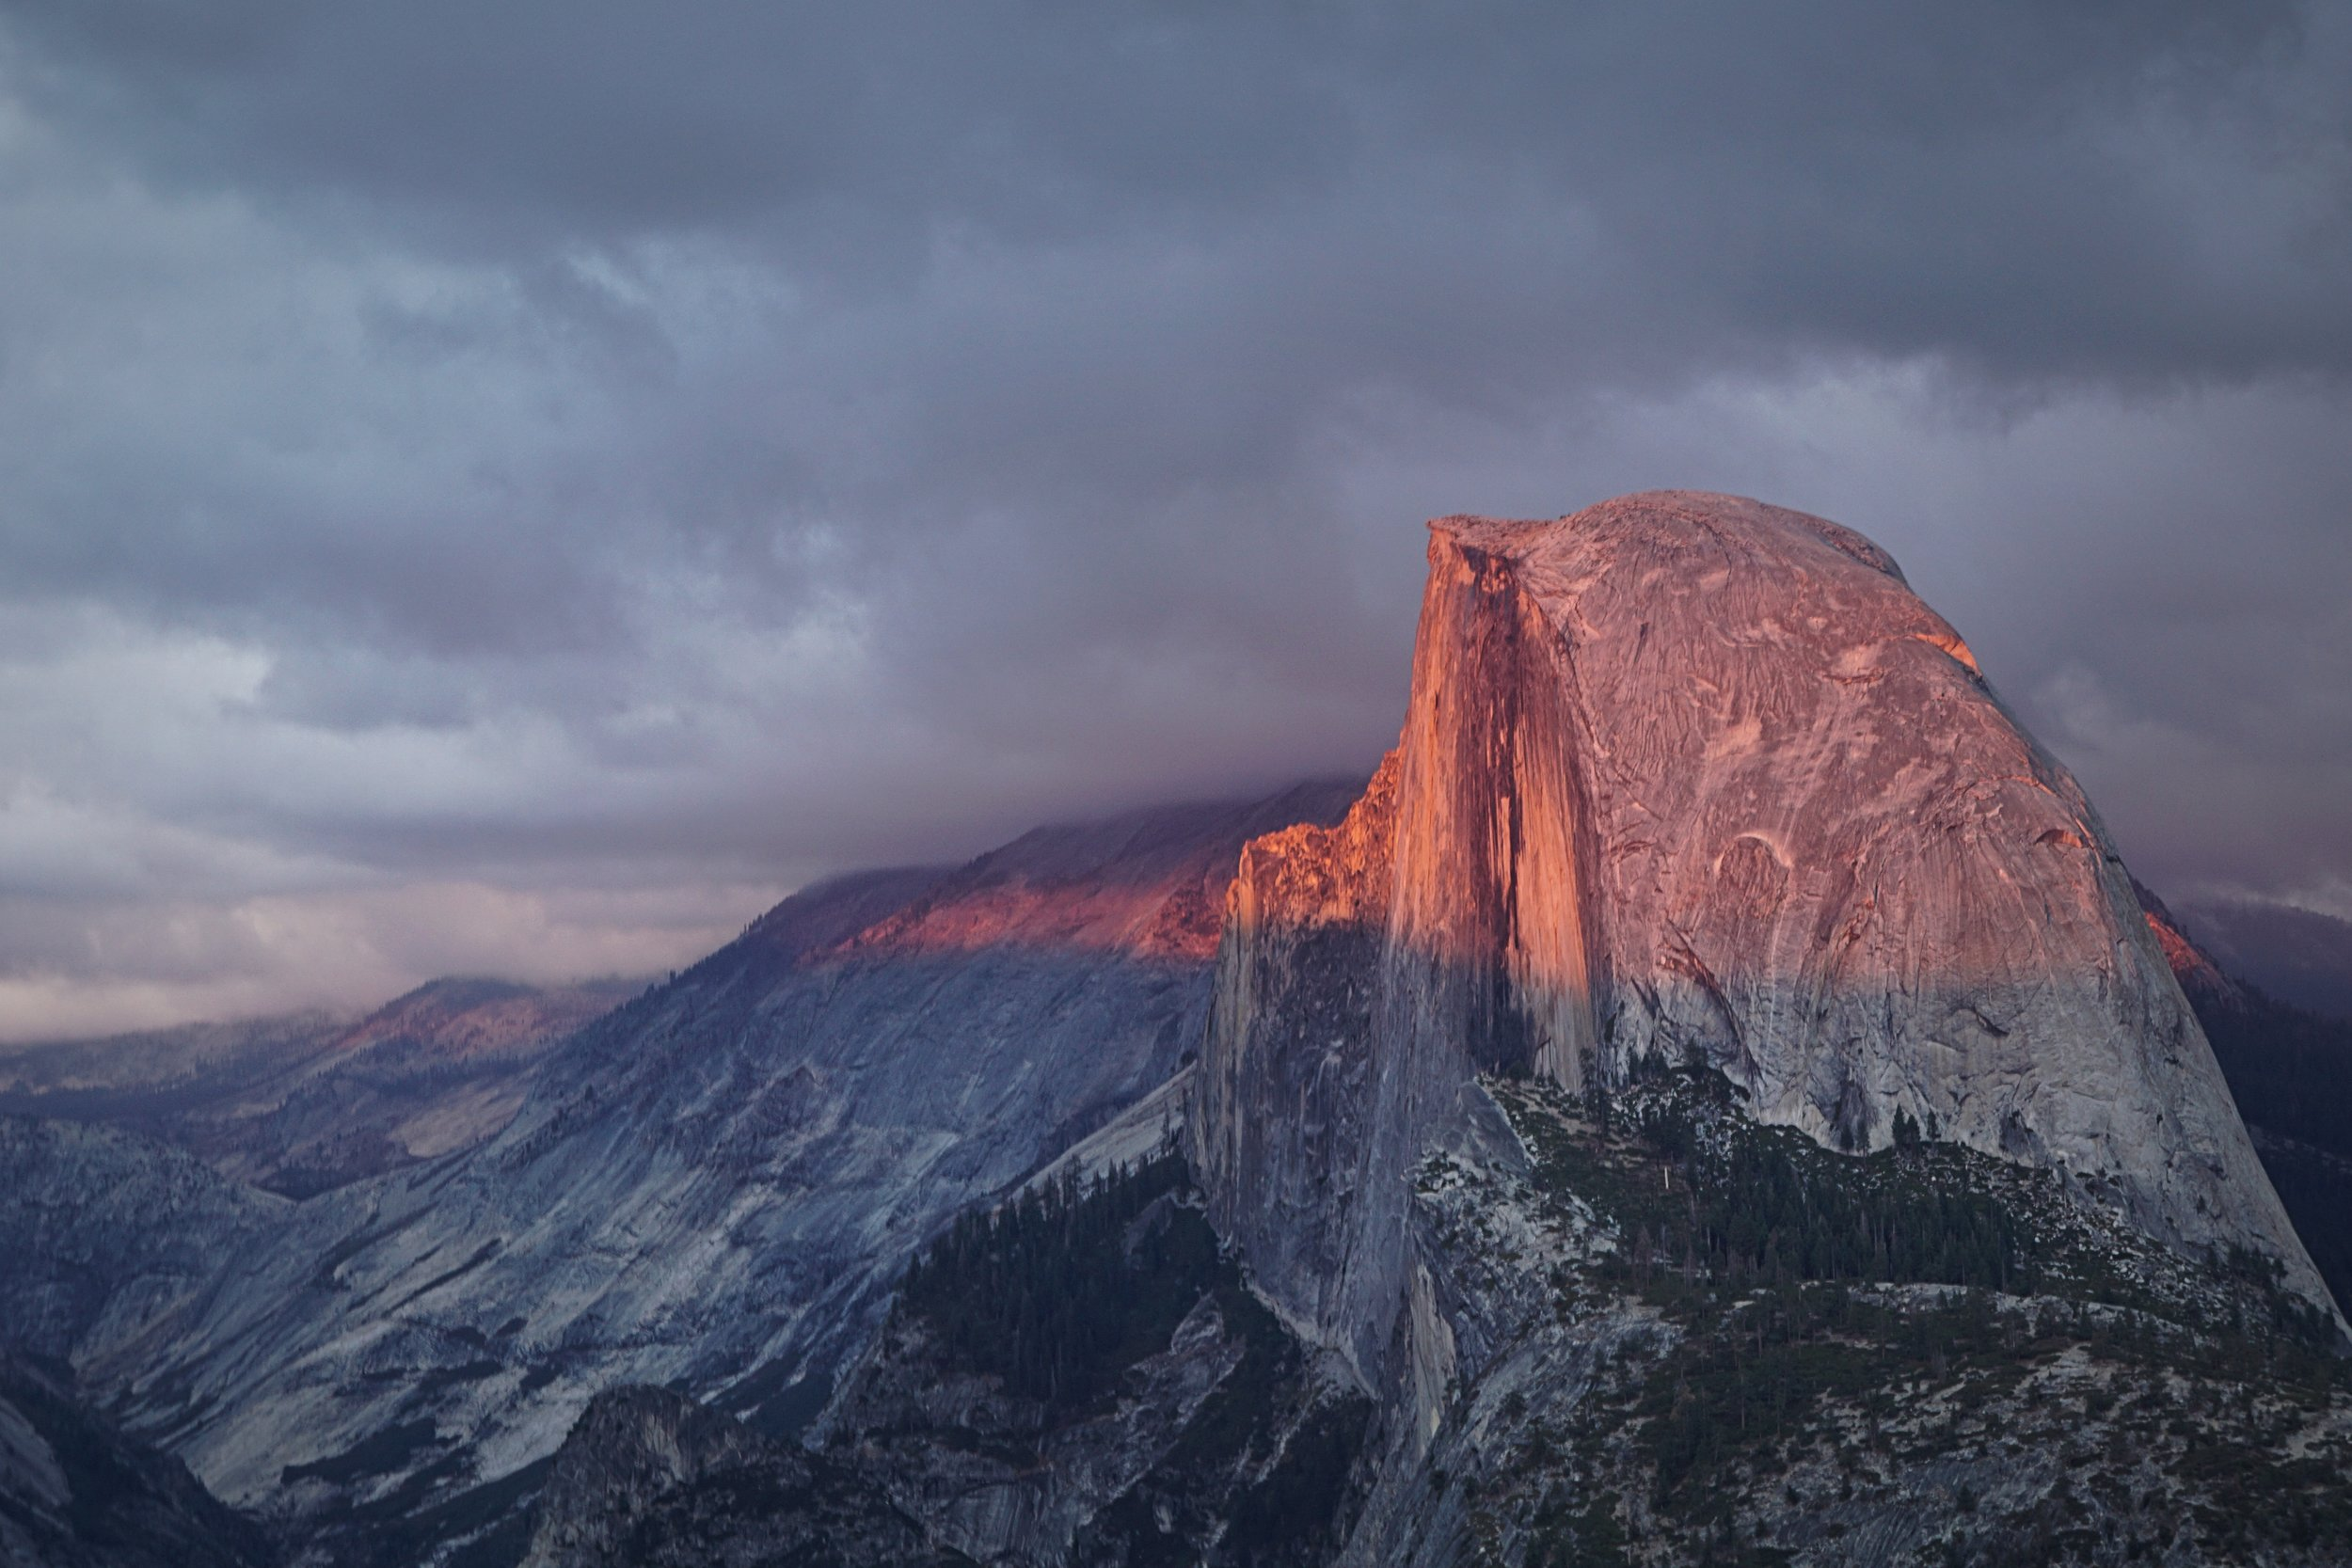 While we were leaving Glacier Point, we noticed Half Dome turn this rosy pink color.